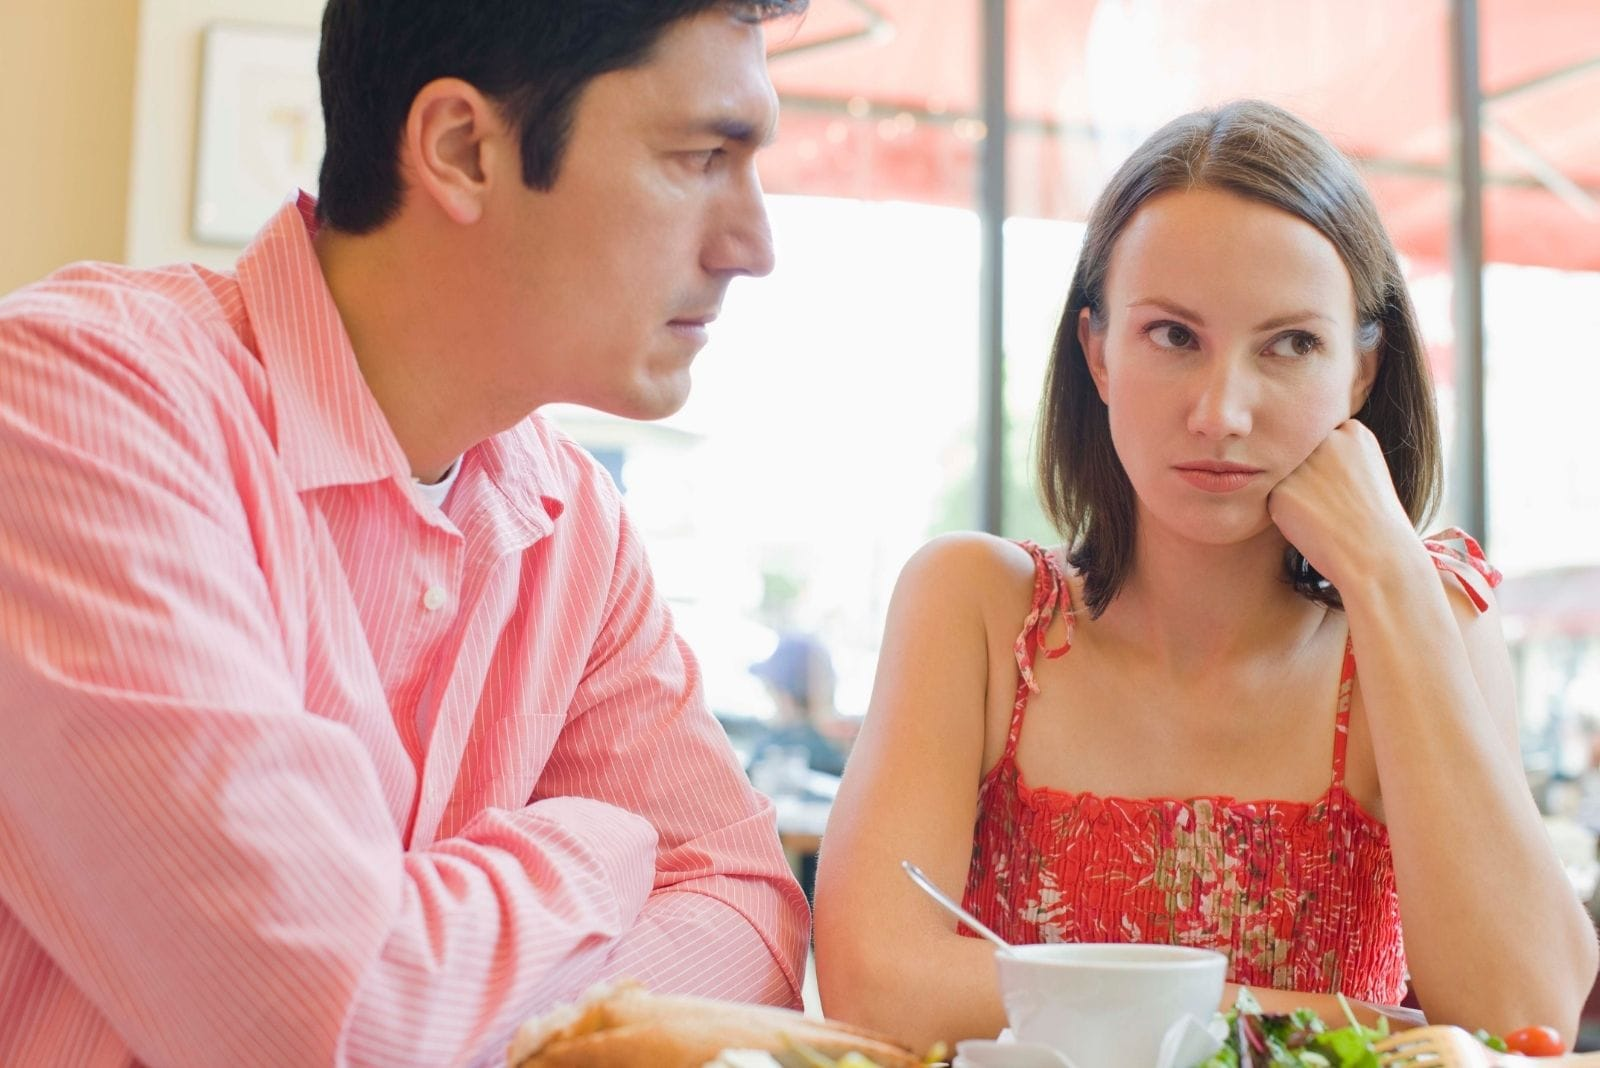 couple arguing in cafe sitting by the table during the day